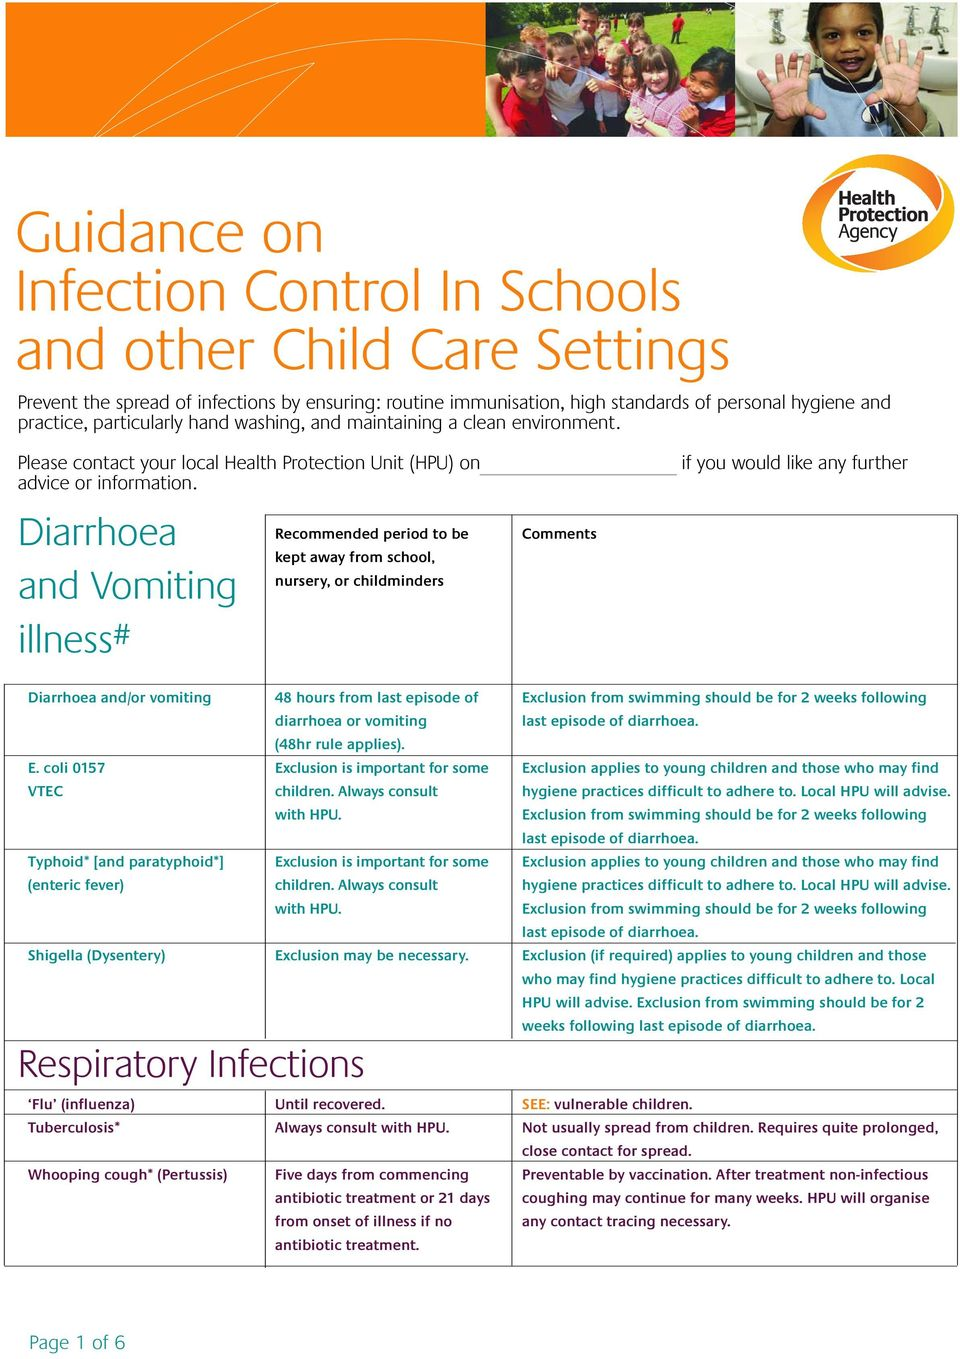 Diarrhoea and Vomiting illness # Recommended period to be kept away from school, nursery, or childminders Comments if you would like any further Diarrhoea and/or vomiting 48 hours from last episode